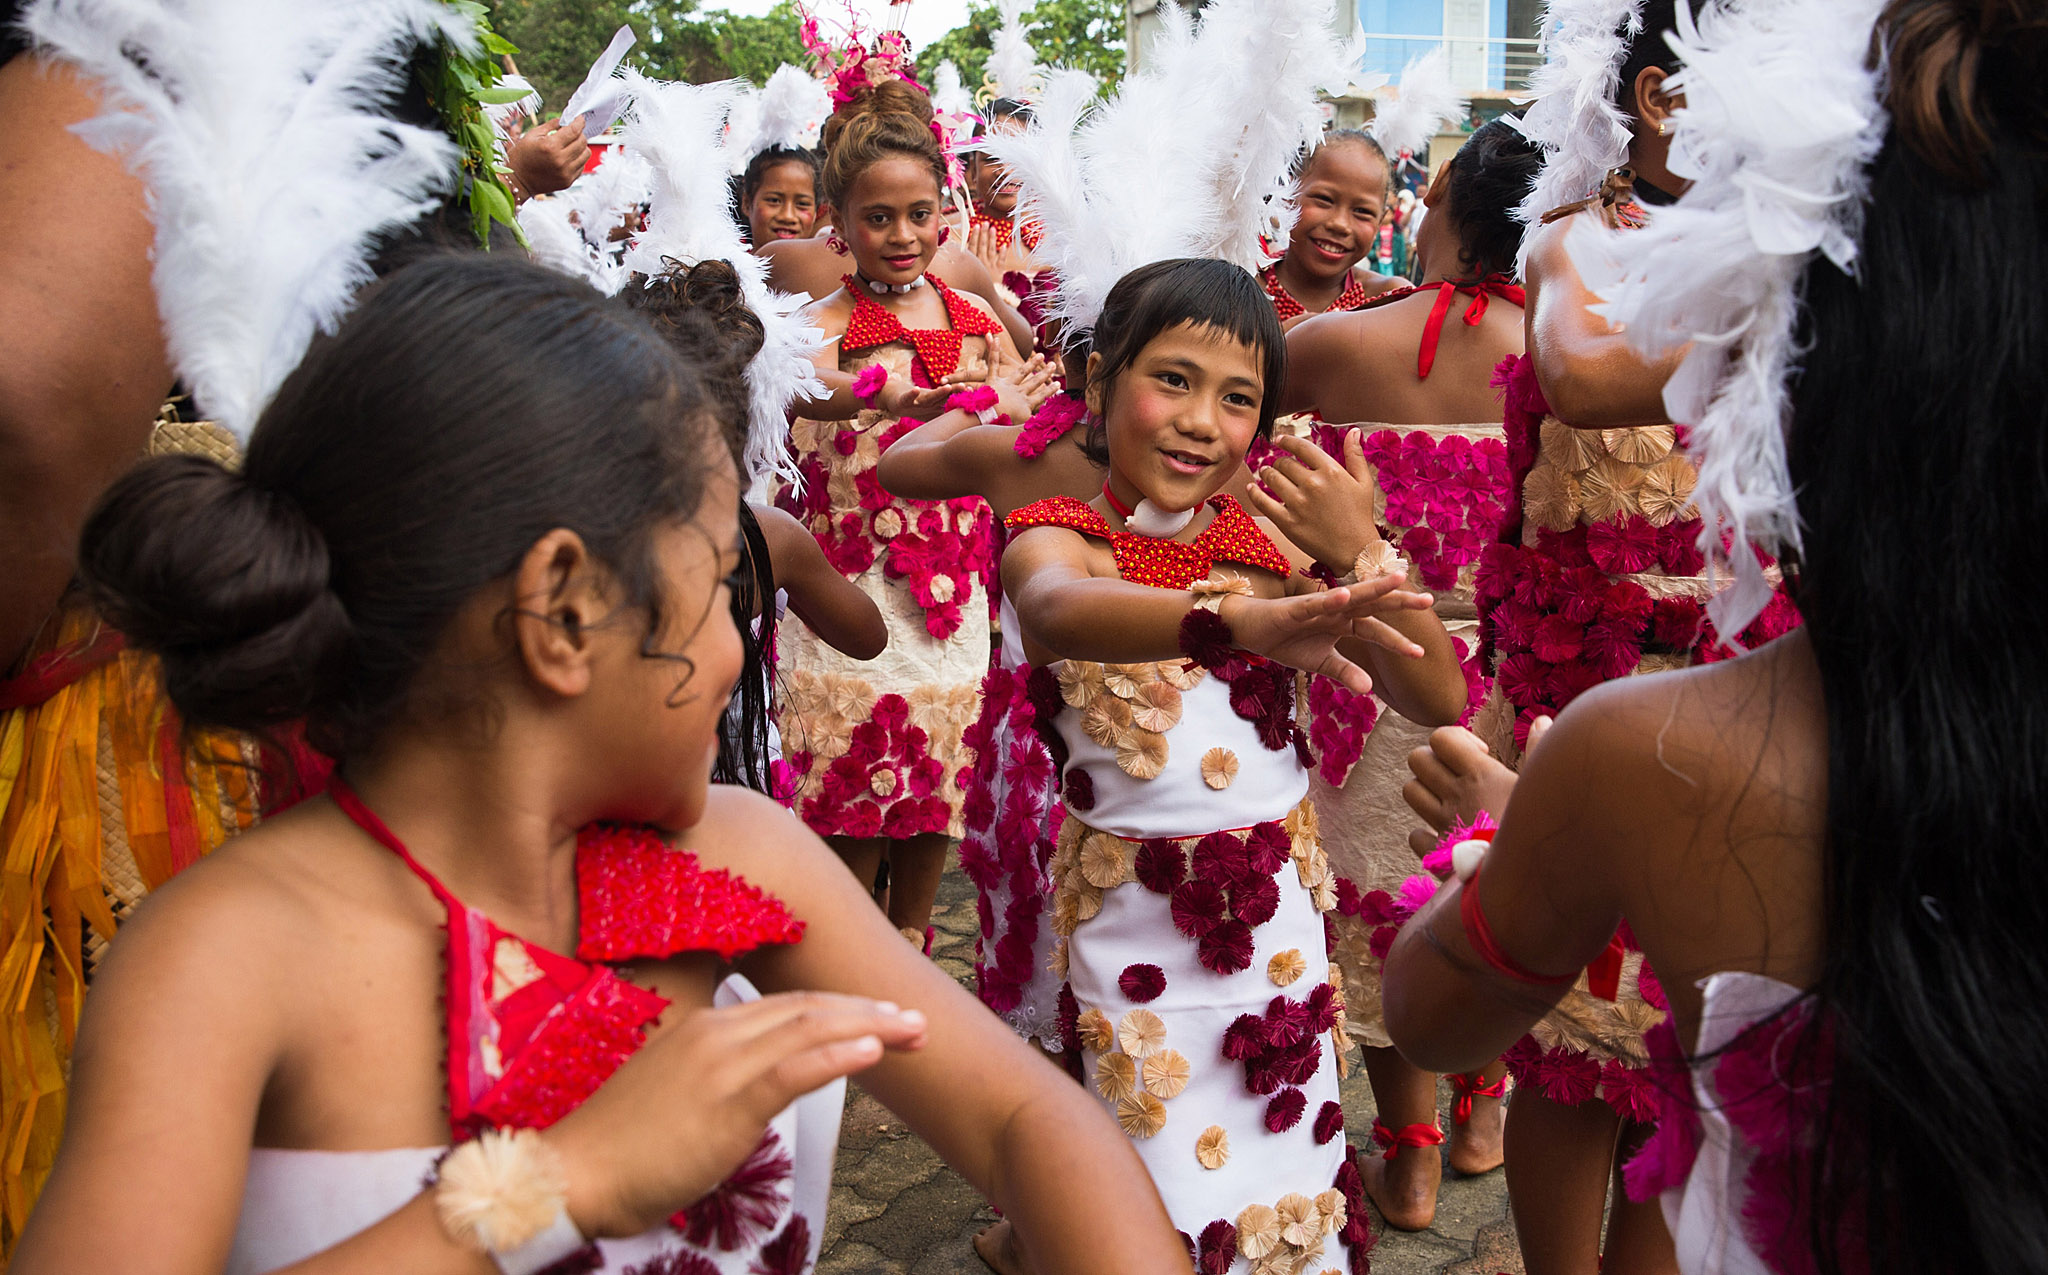 Tonga Prepares For Coronation Of King Tupou VI...NUKUALOFA, TONGA - JULY 2: School children wearing traditional costumes celebrate the upcoming Kings Coronation on July 2, 2015 in Nukualofa, Tonga. Tonga is preparing for the coronation of King Tupou VI with a week of festivities ahead of the official service at the Free Wesleyan Church in Nuku'alofa on Saturday. King Tupou VI succeeds his brother, King Tupou V, who passed away in 2012.(Photo by Edwina Pickles/Fairfax Media/Getty Images)